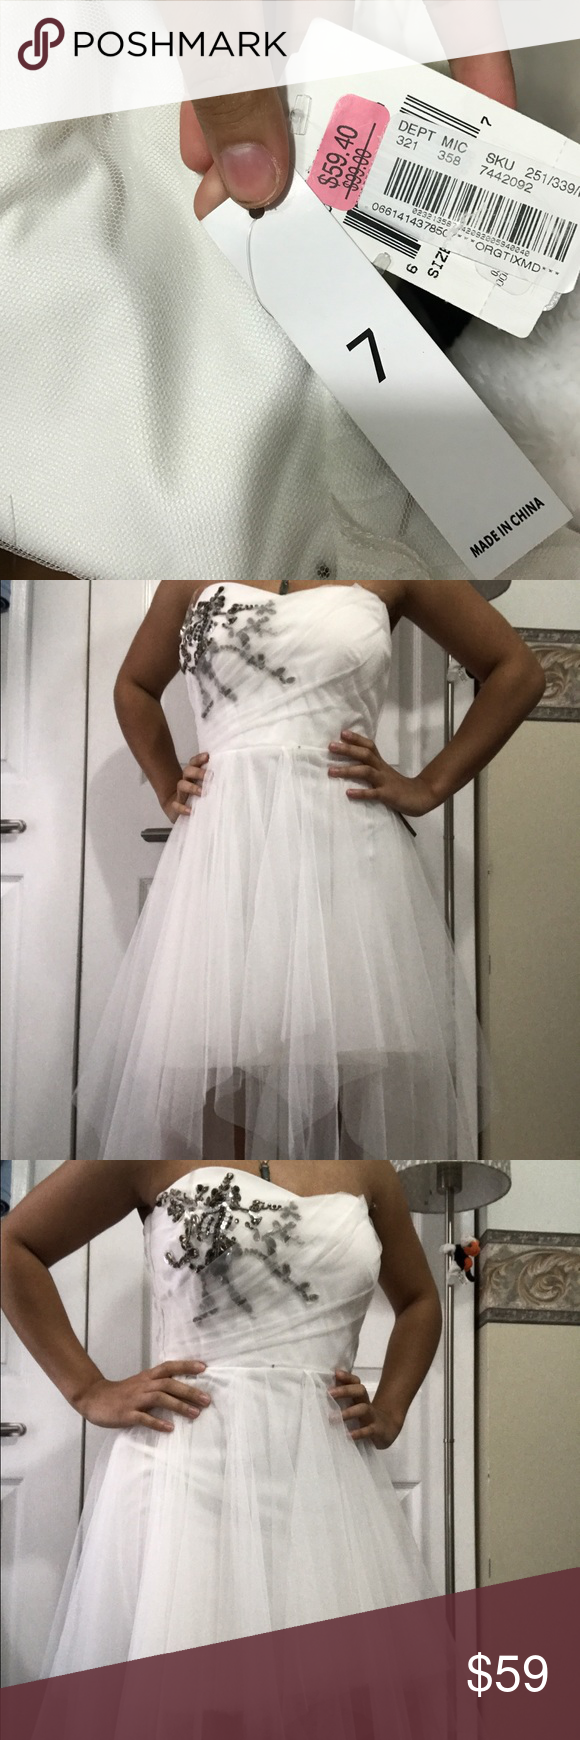 White prom dress white with sequenced jewels on top right breast